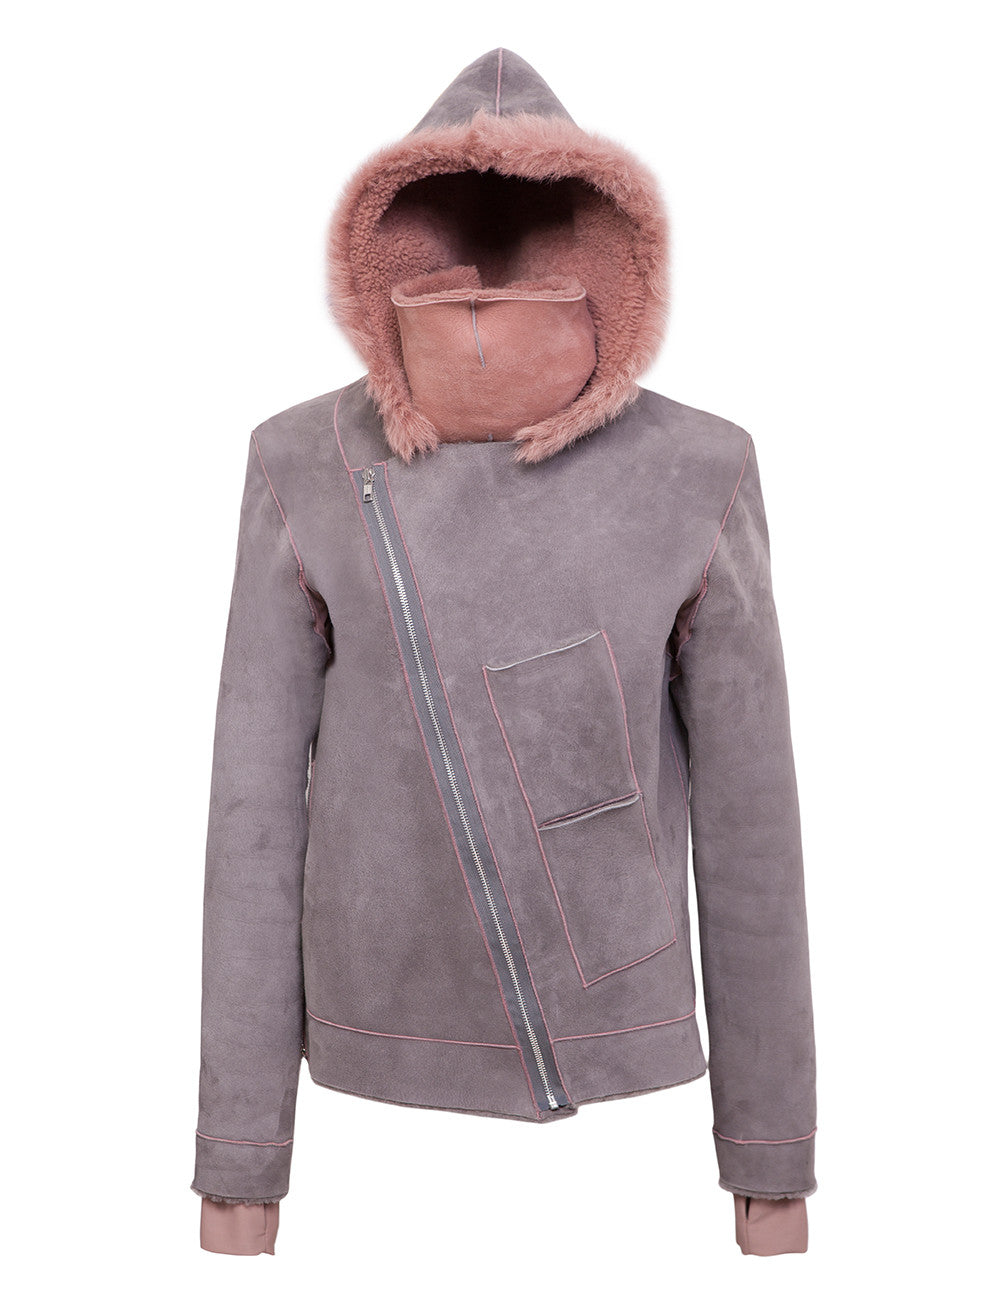 Technical Jacket - Elena Benarroch - Coat - TOPGEARNY